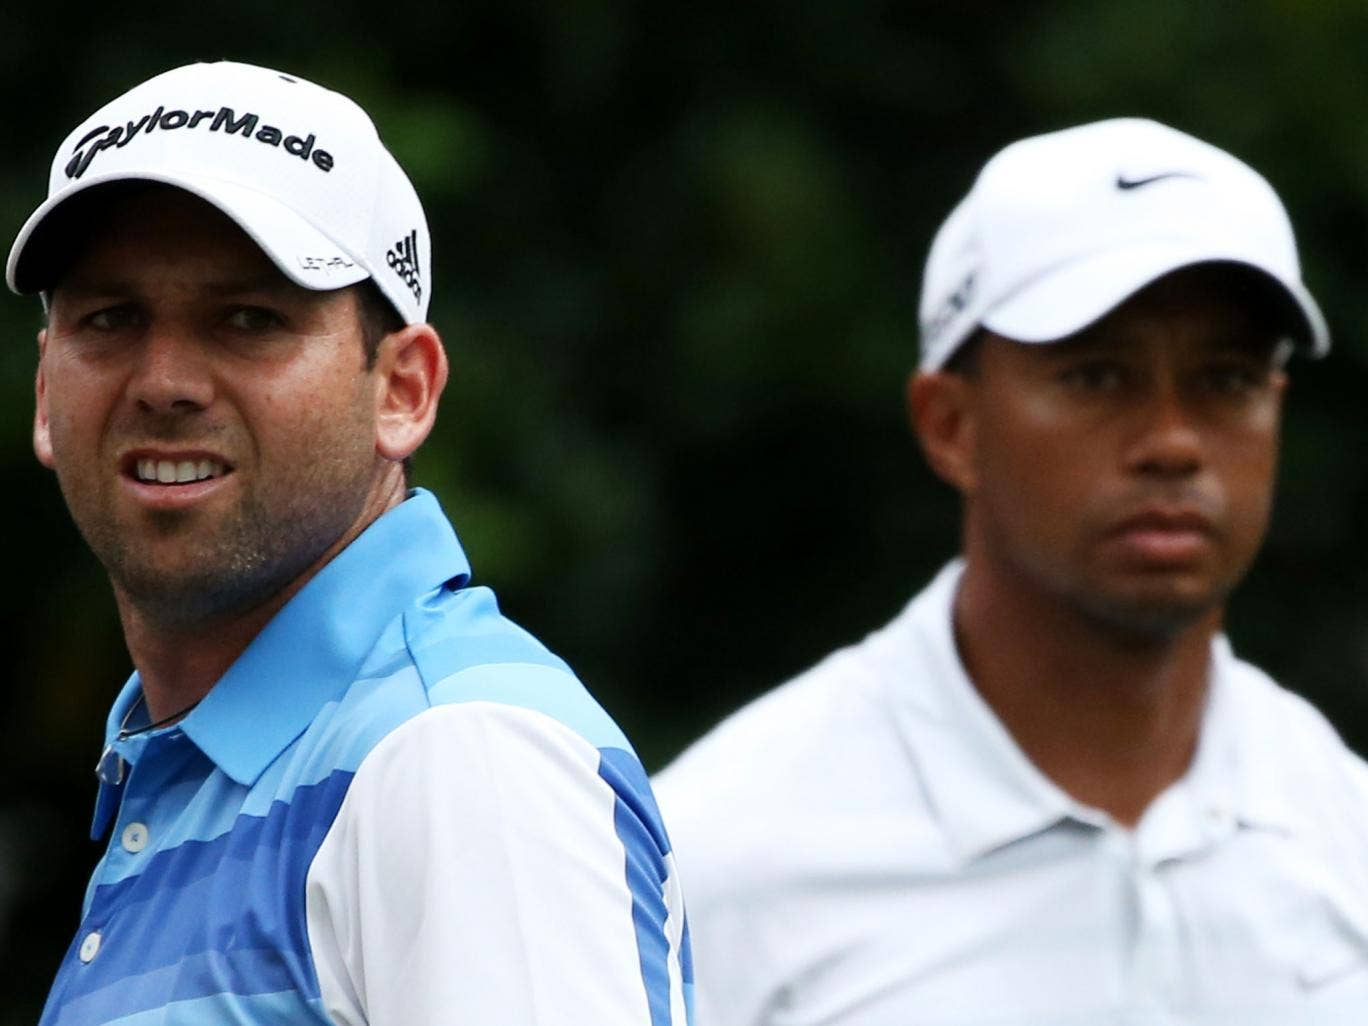 Sergio Garcia, left, and Tiger Woods, right, have clashed over the years